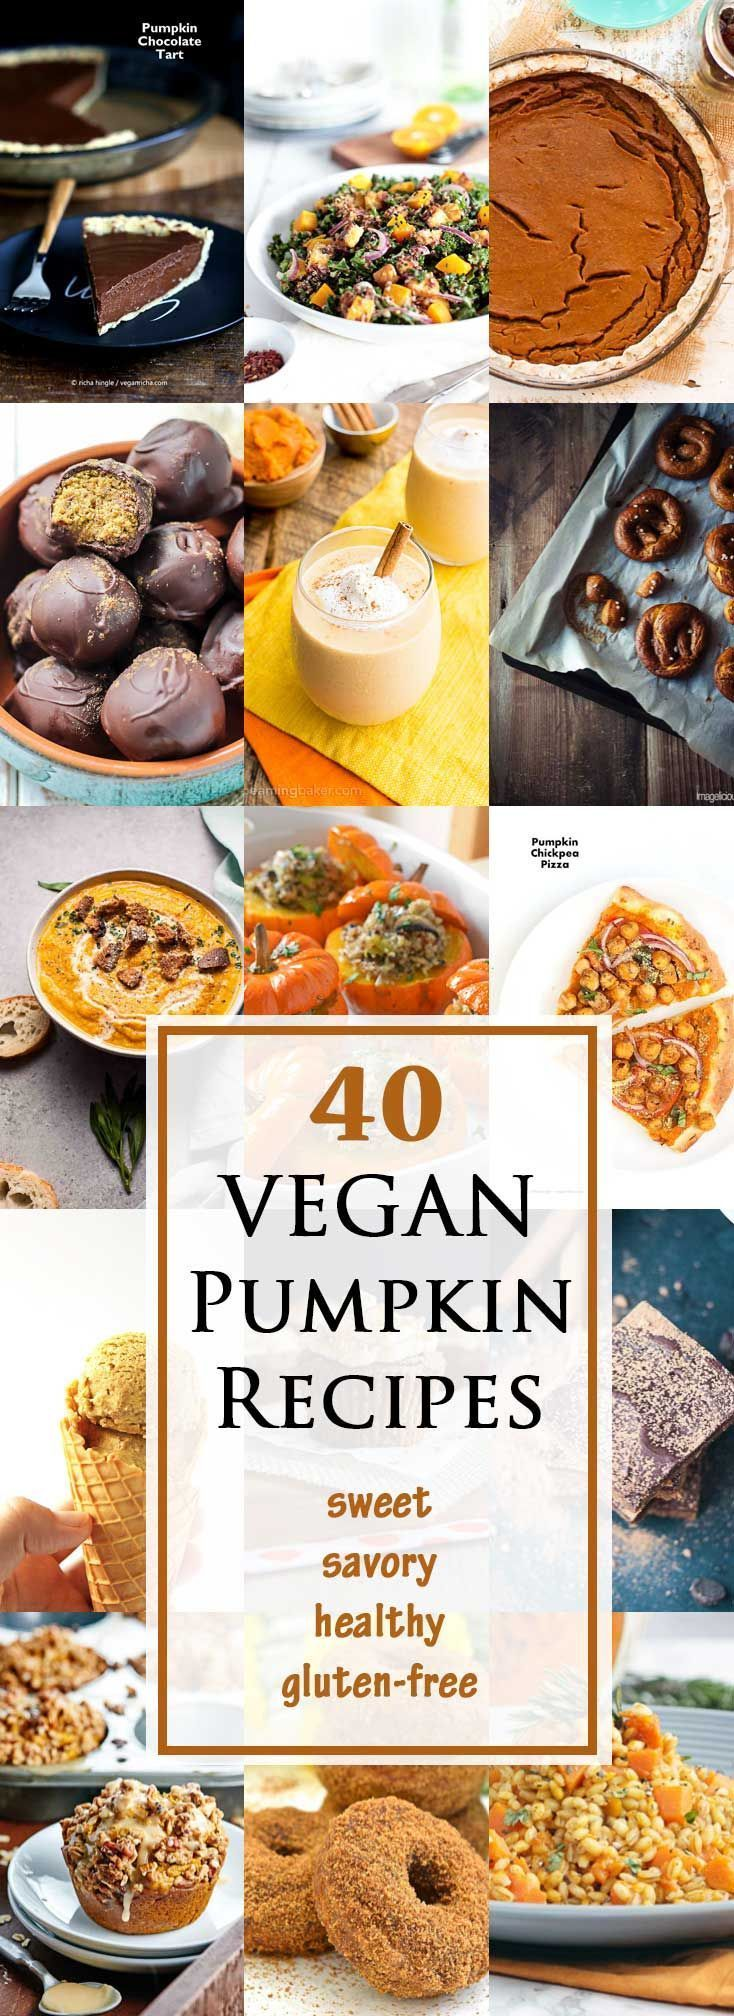 40 Sweet & Savory Vegan Pumpkin Recipes for your holiday meals! #vegan #glutenfree #healthy | http://www.vegetariangastronomy.com